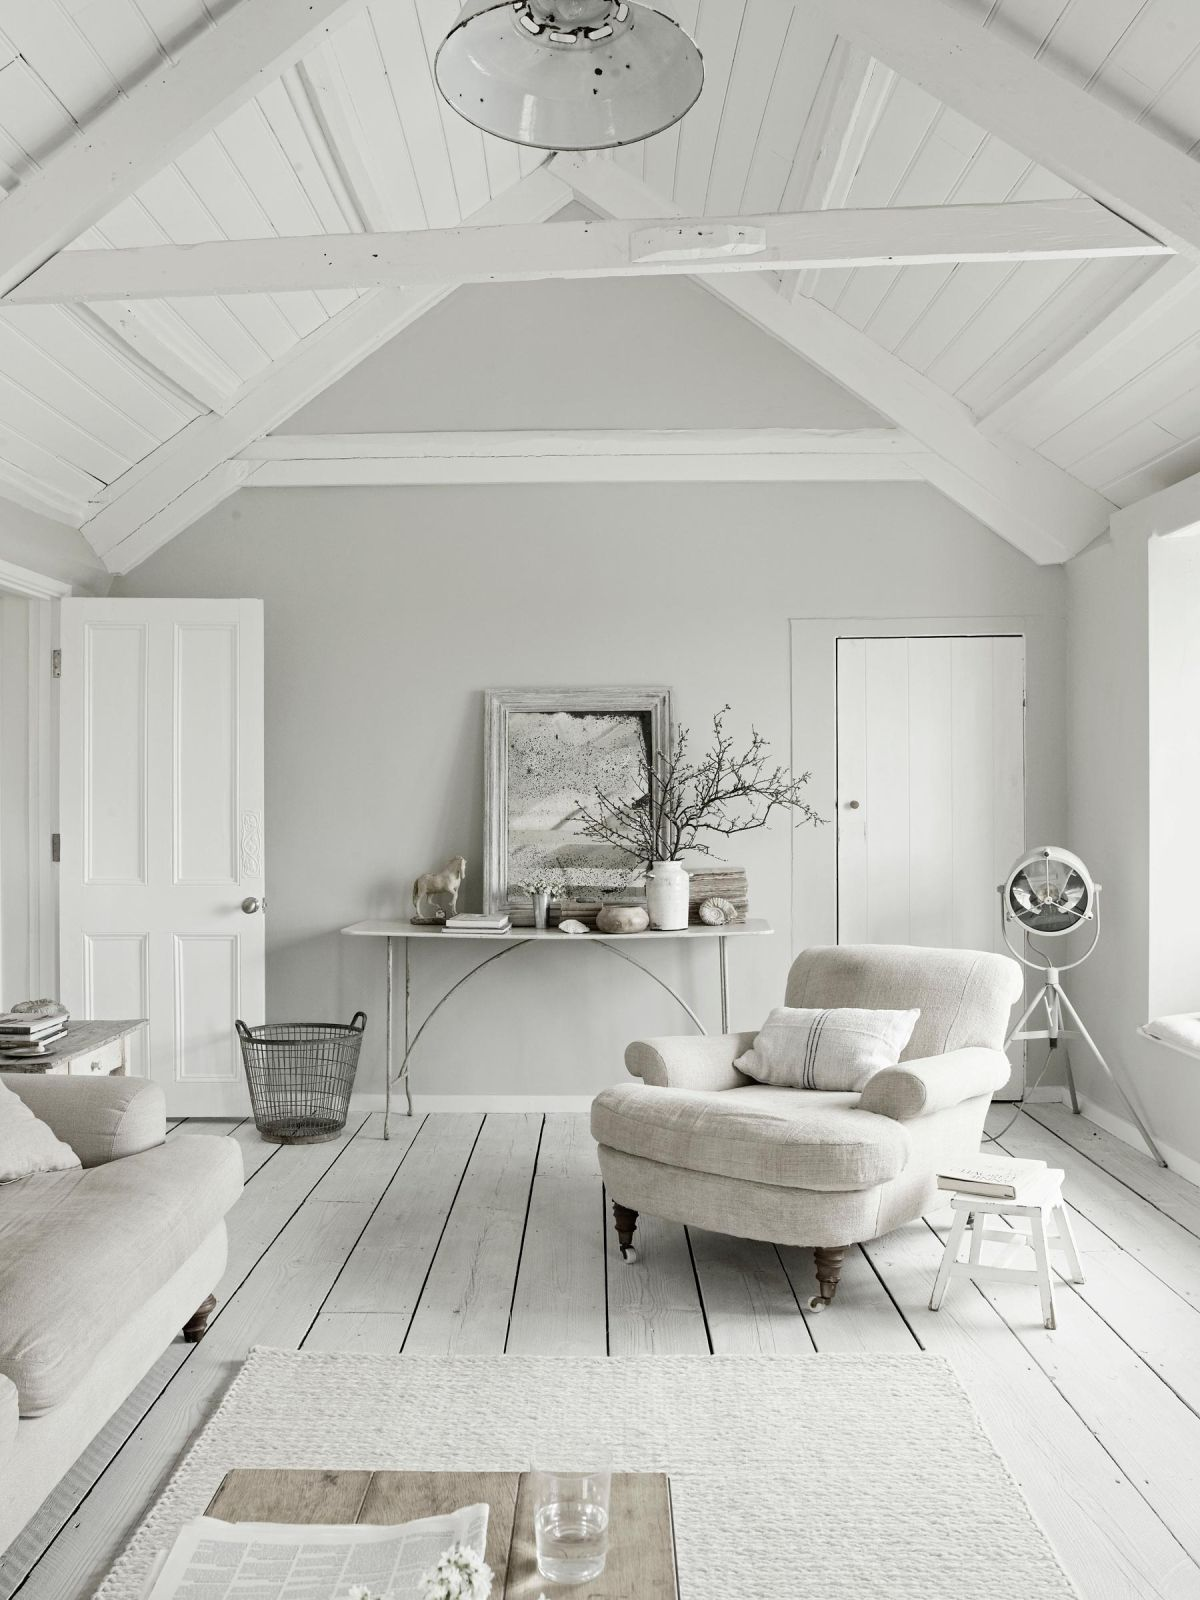 Style Classic: Stripped Wood Floors